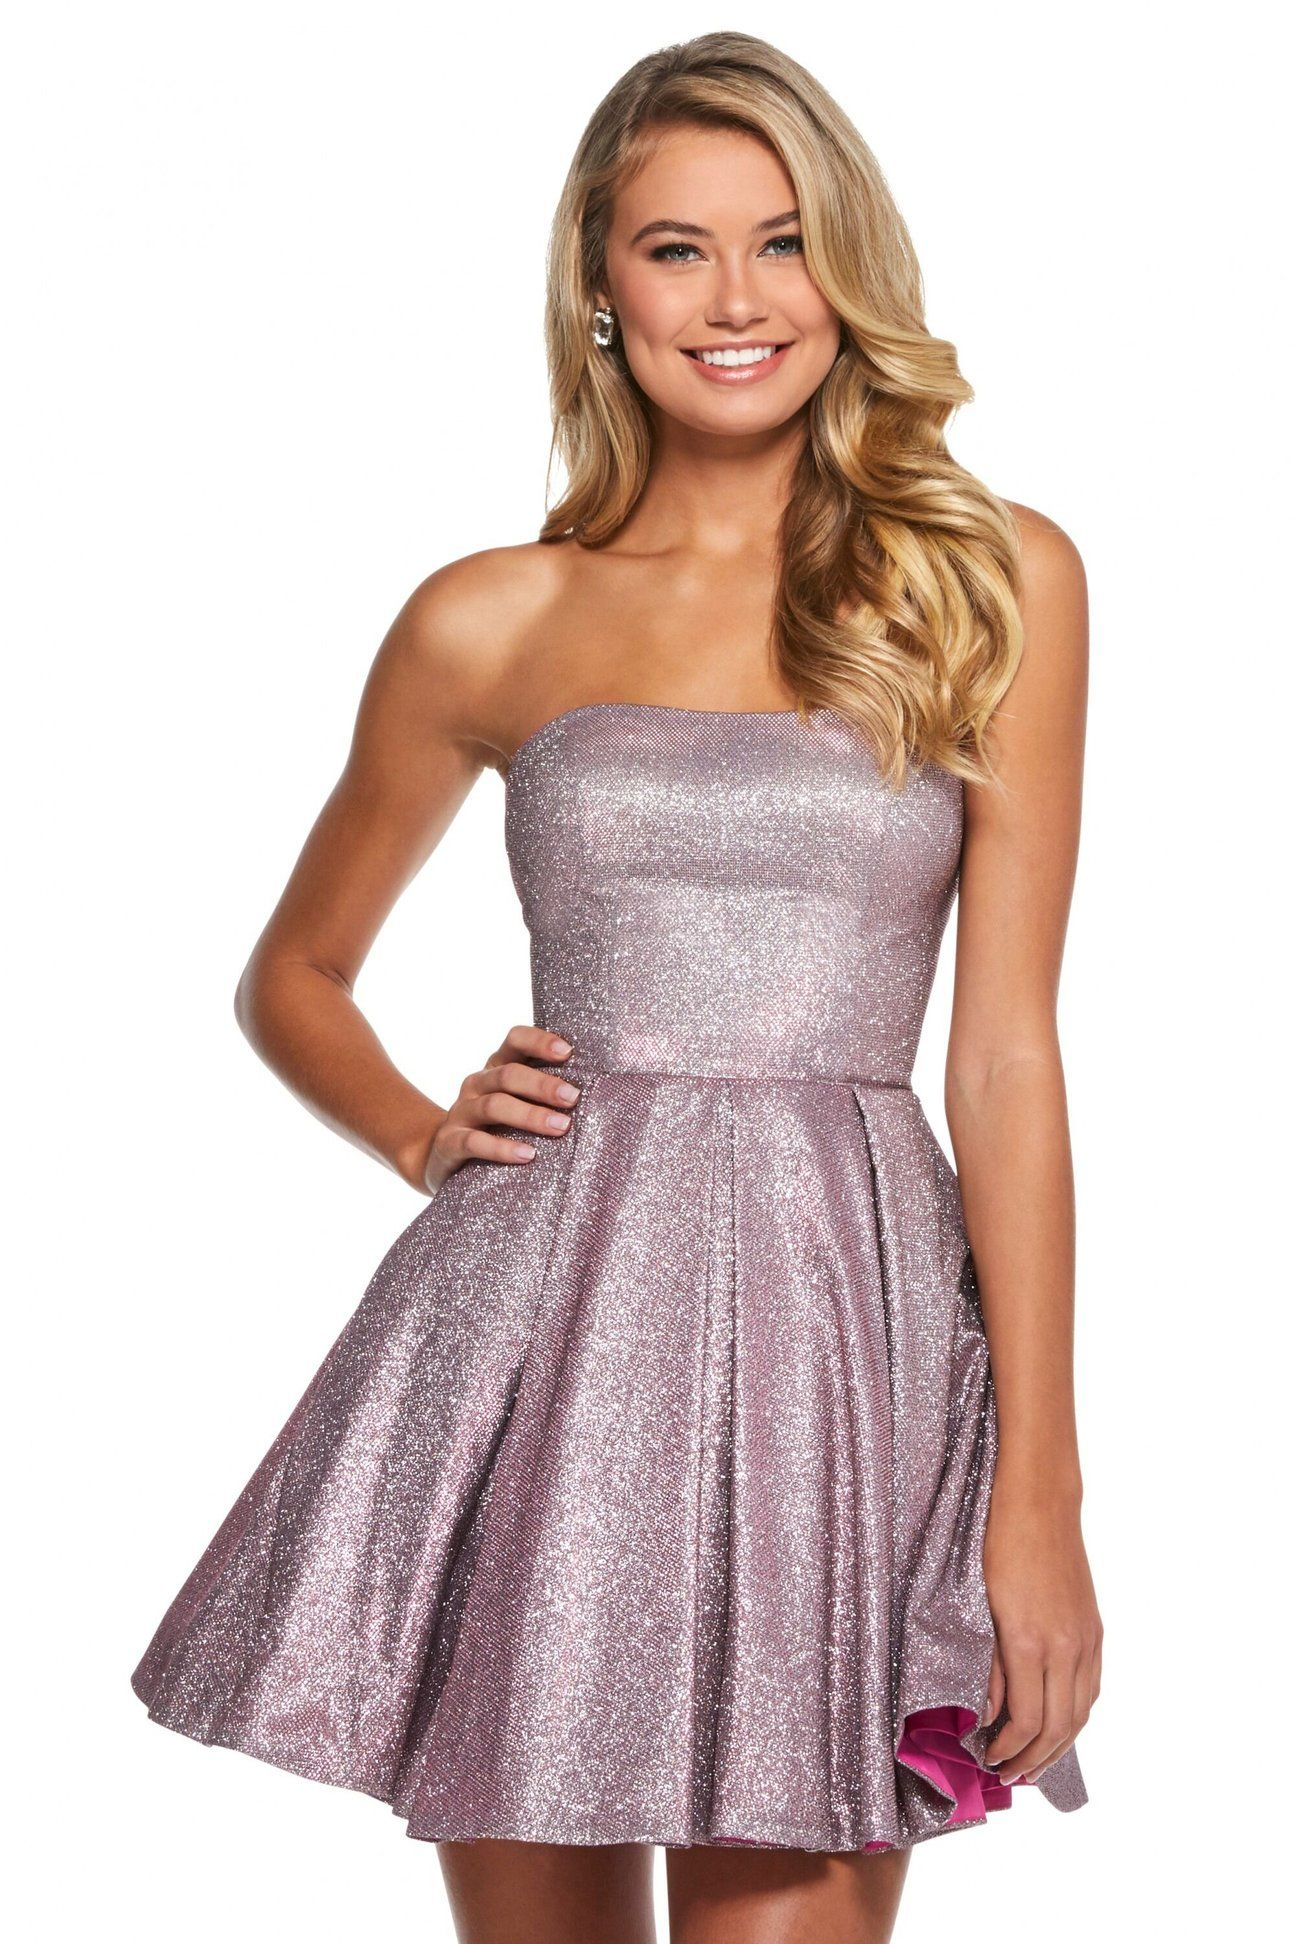 Sherri Hill 52971 Short Strapless Glitter Knit A Line Dress In 2021 Prom Dresses Long With Sleeves Homecoming Dresses Short Sherri Hill Short Dresses [ 1944 x 1296 Pixel ]